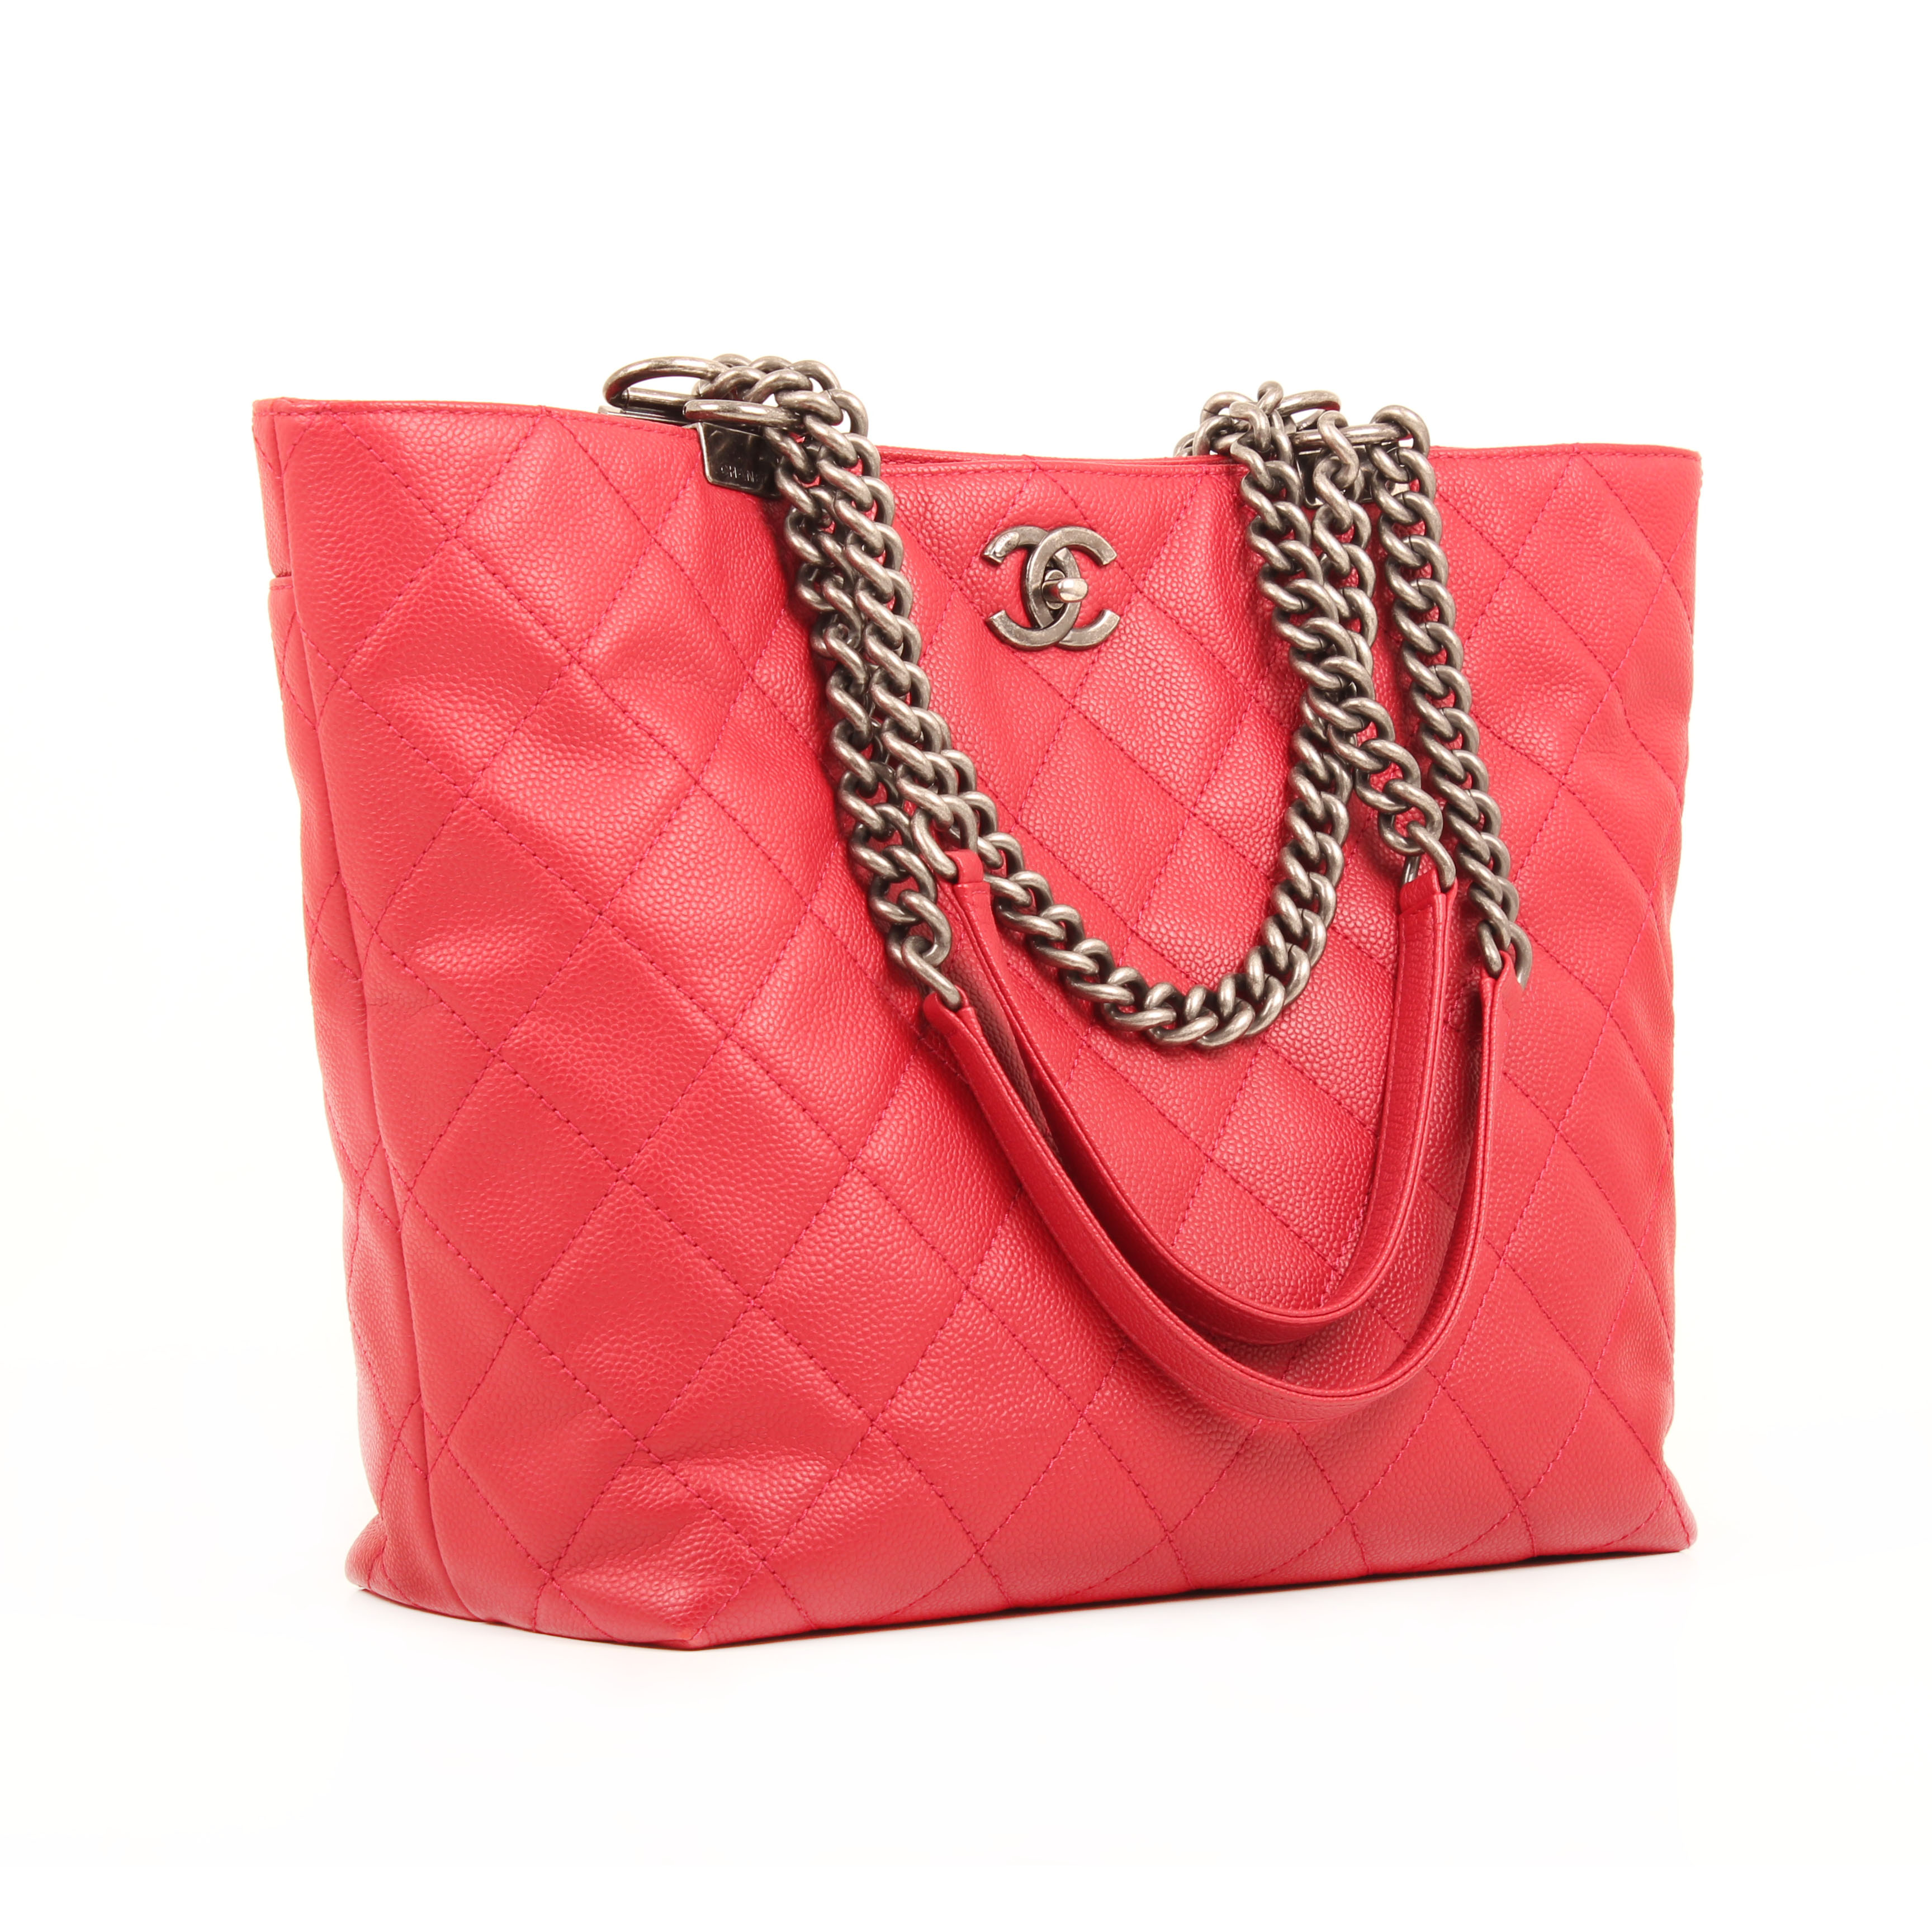 chanel bag tote in chains caviar leather strawberry general